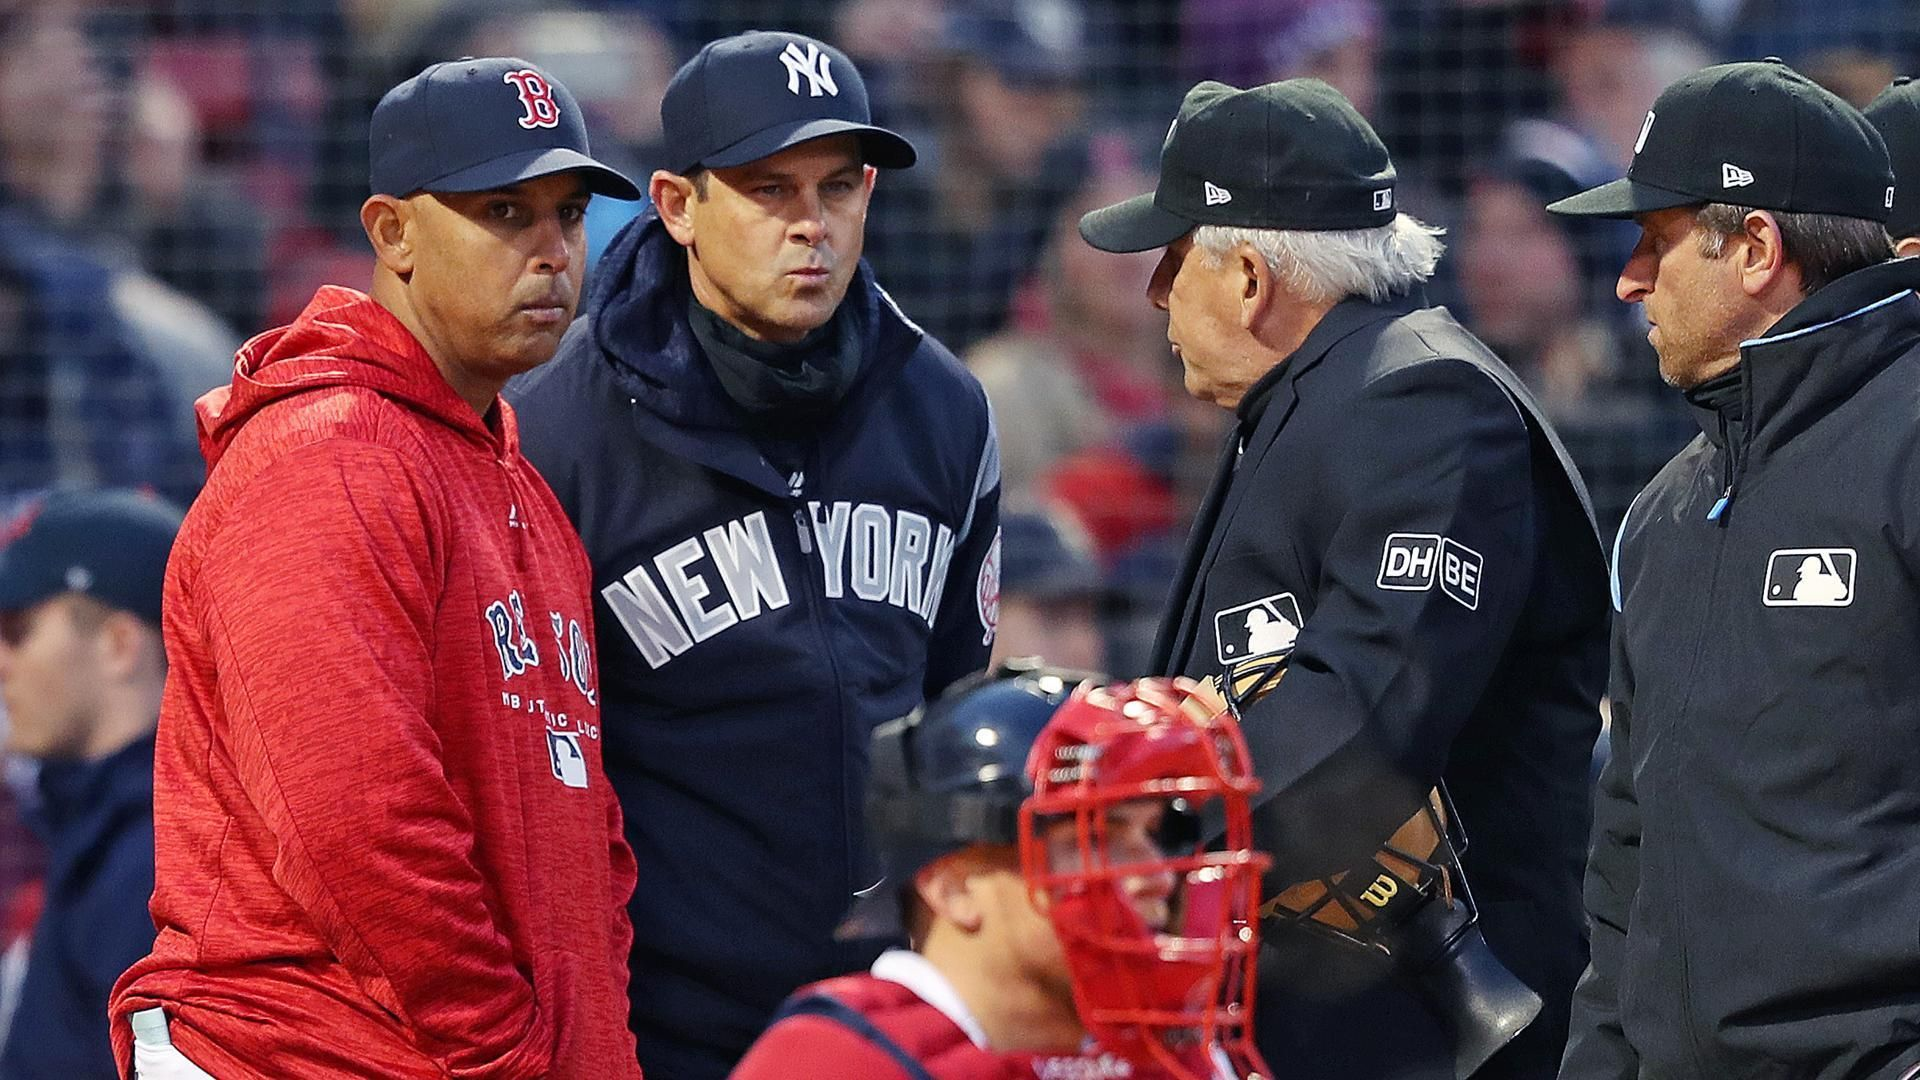 Amazingly These Rookies Have Managed To Handle Adversity Boston Red Sox New York Yankees Fenway Park